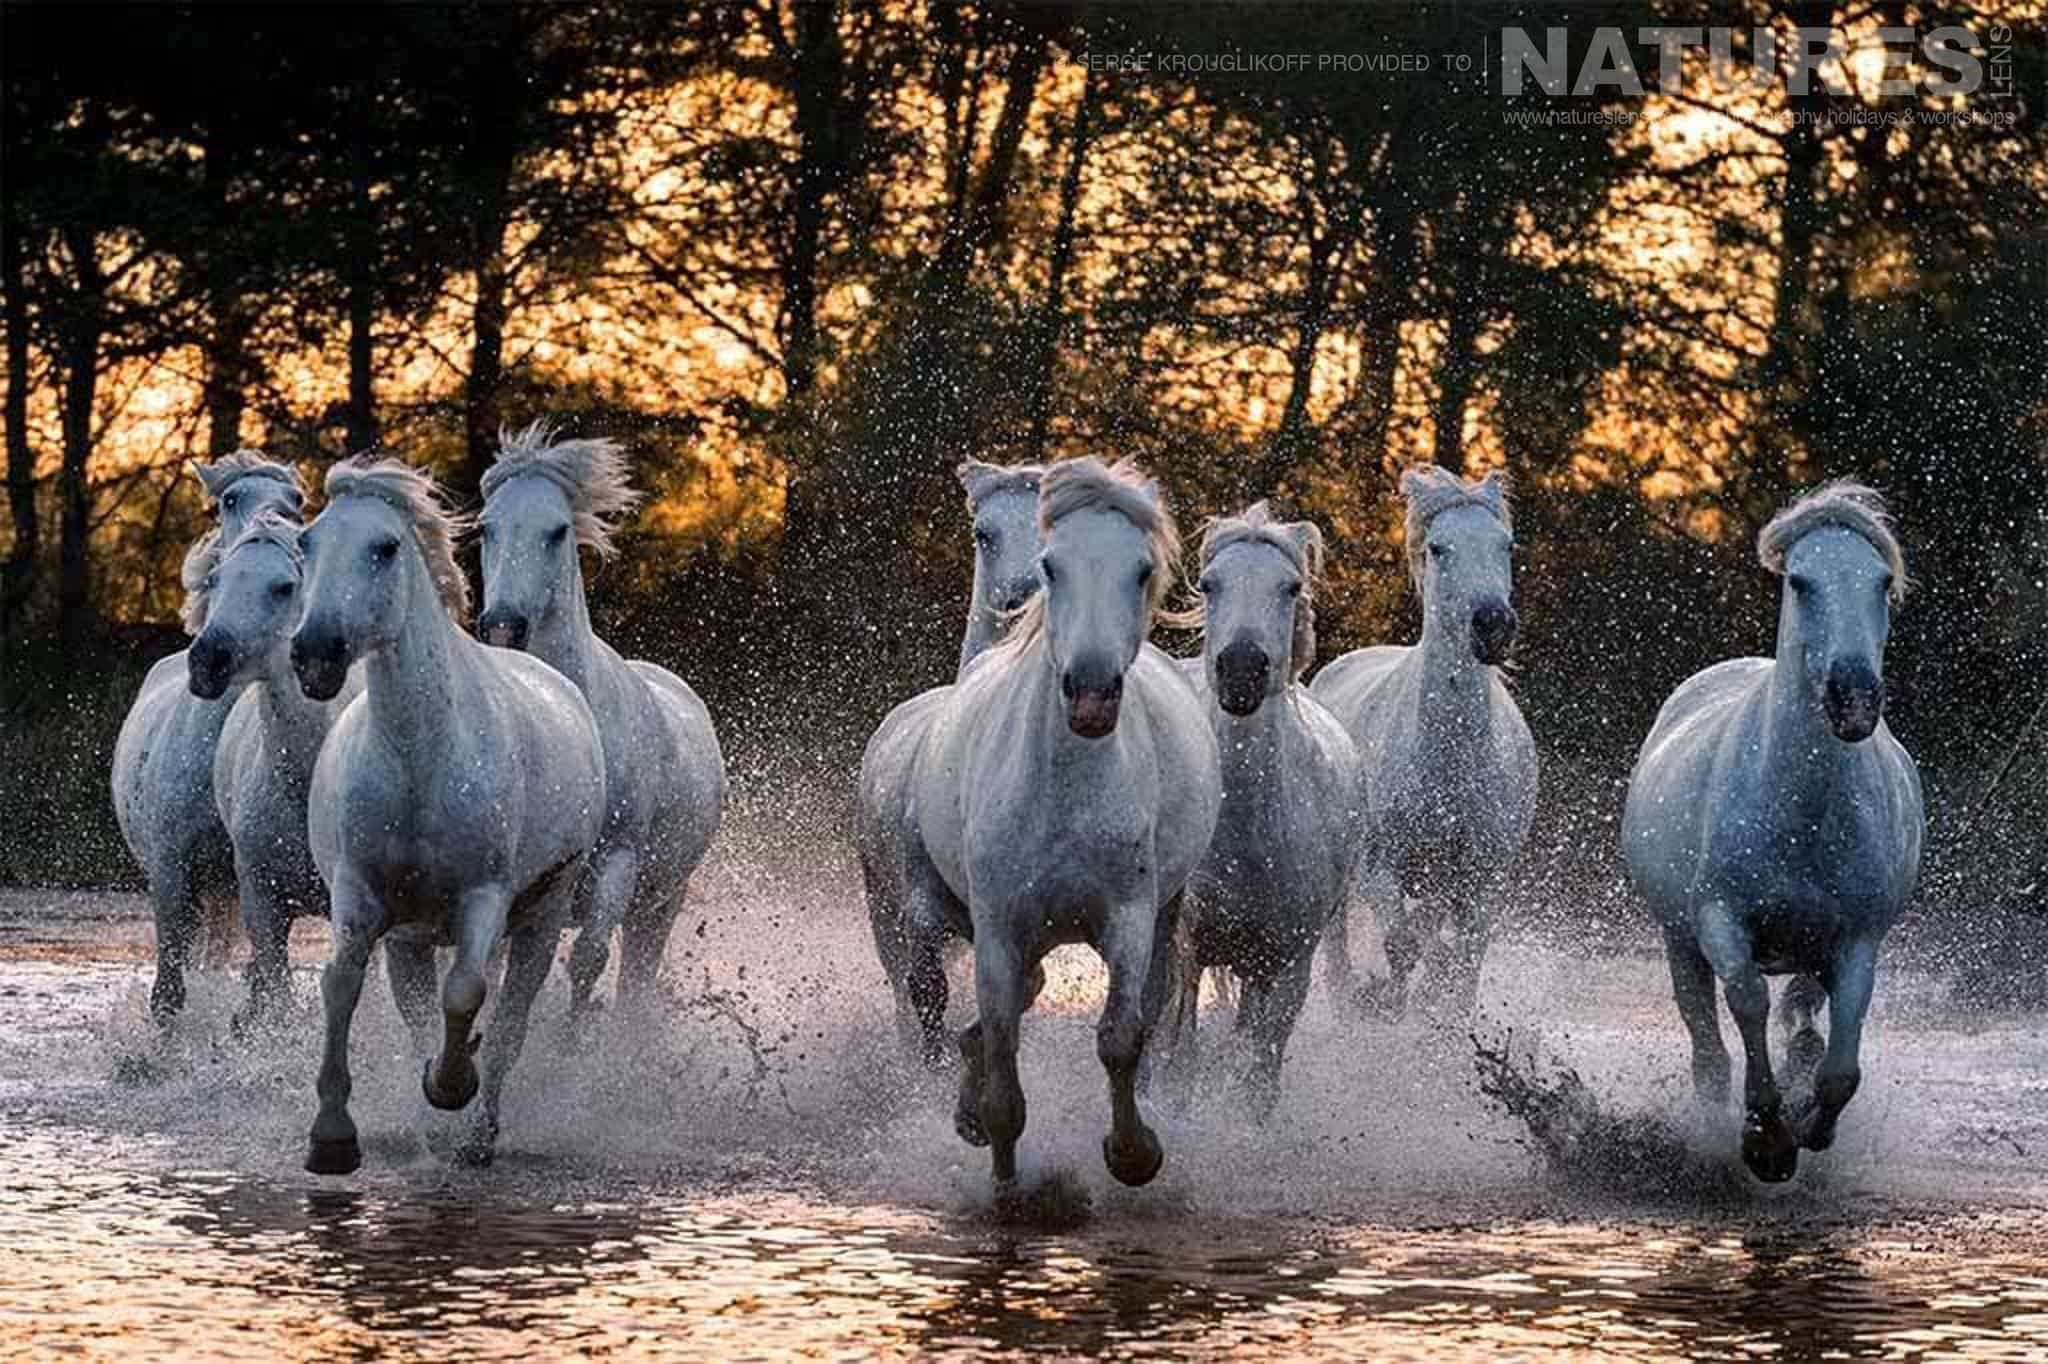 Powerful wild white horses running through water at sunset typical of the type of image that may be captured during the NaturesLens Wild White Horses of the Camargue Photography Holiday